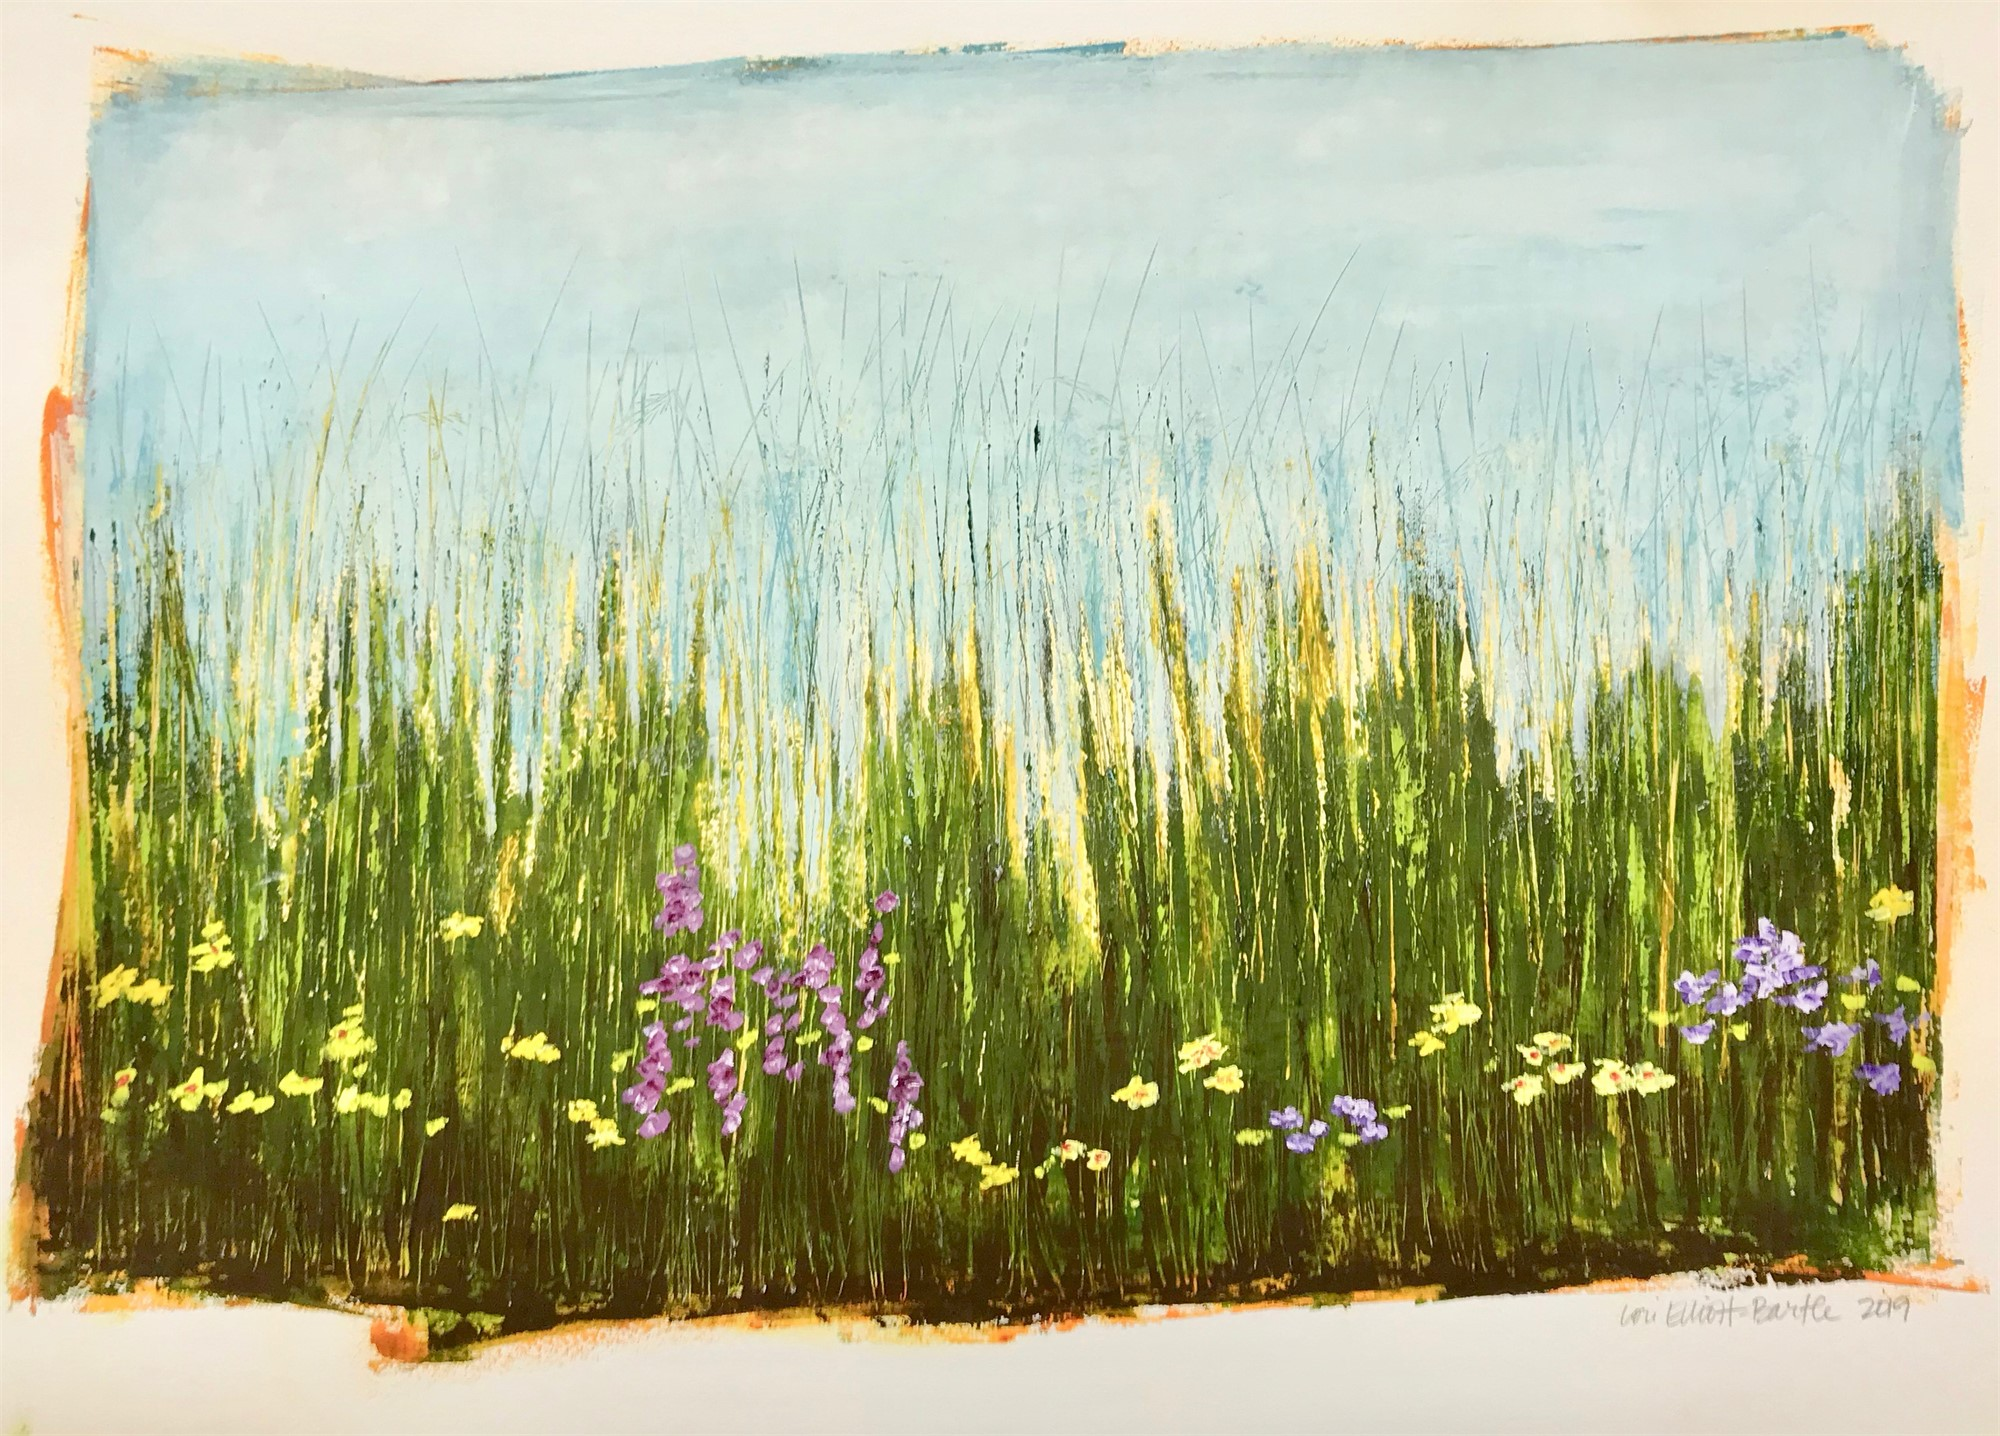 Blooms & Grasses #6 by Lori Elliott-Bartle